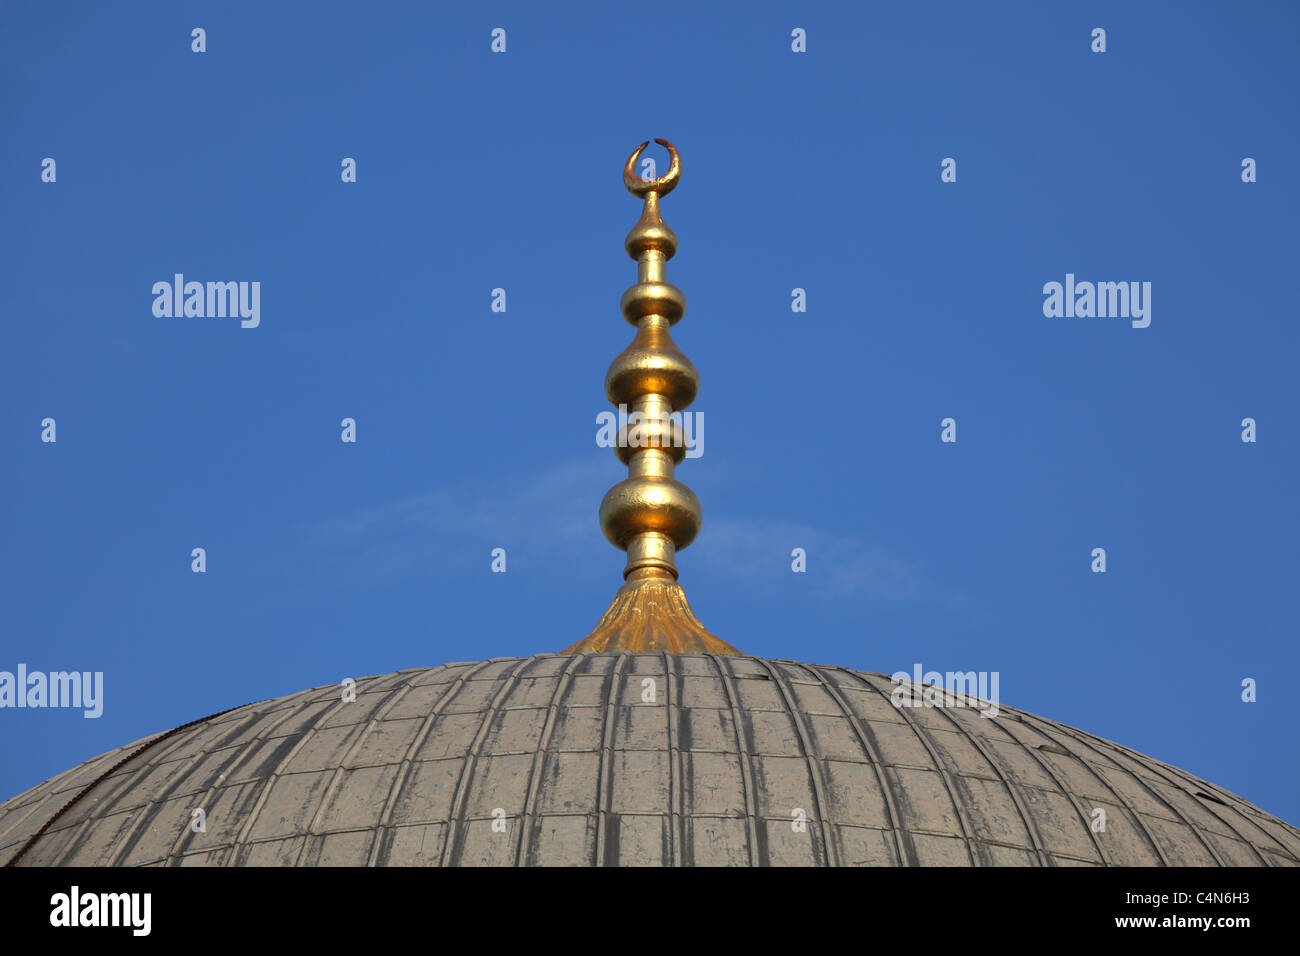 Cupola of a mosque in Istanbul, Turkey - Stock Image